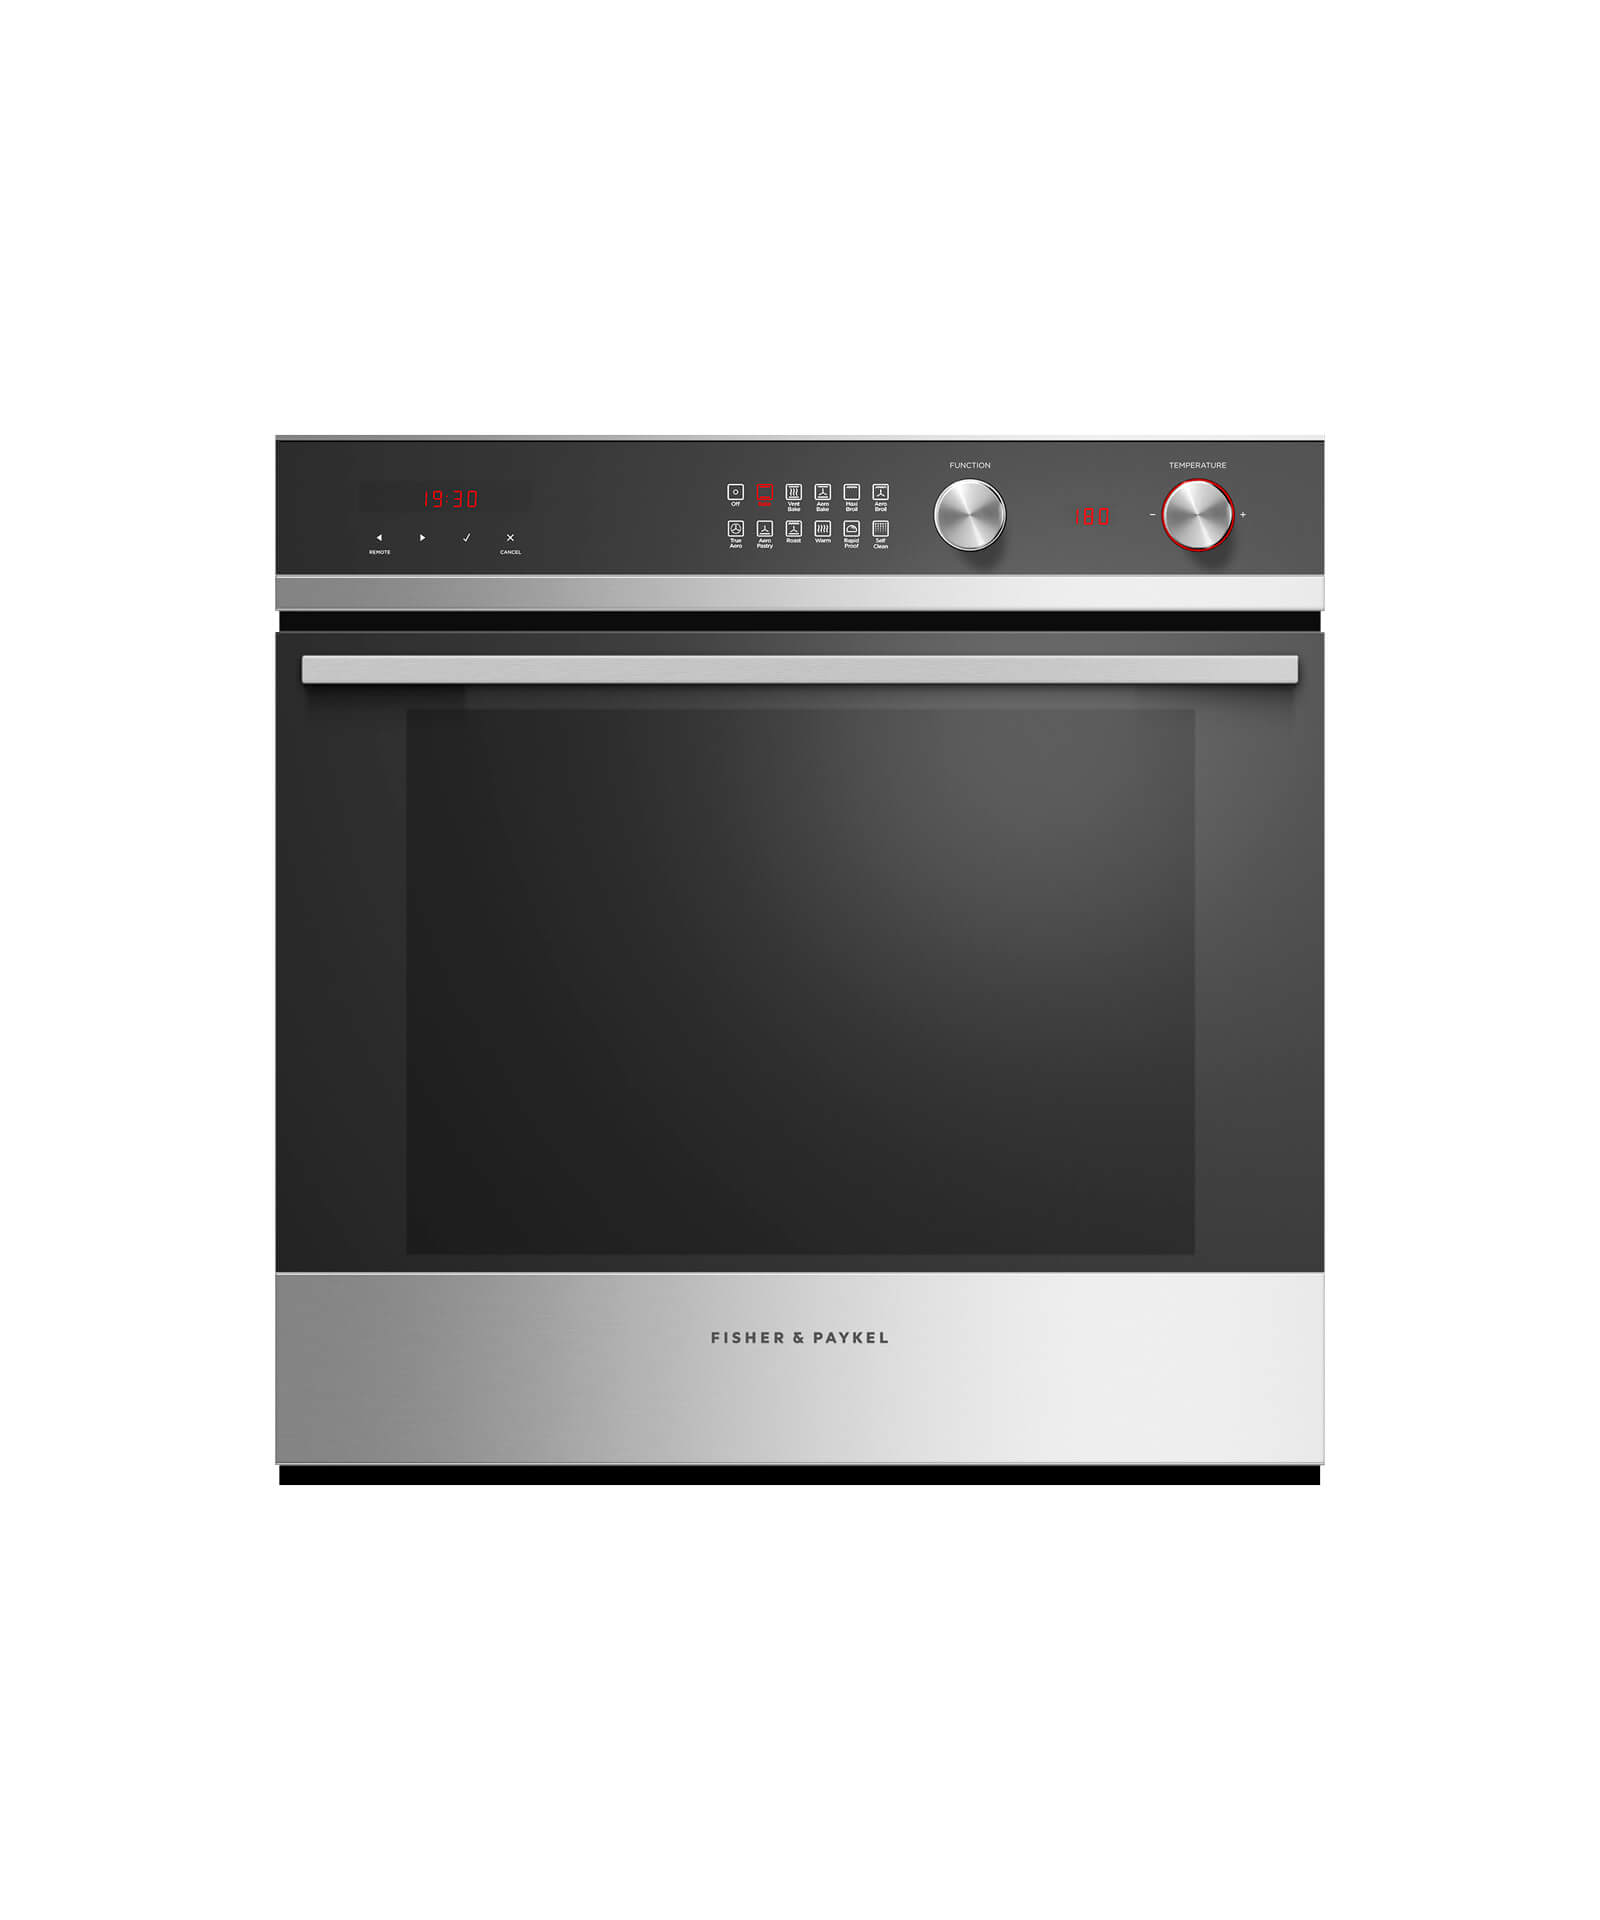 """Fisher and Paykel 24"""" Wall Oven  3 cu ft, 11 Function, Self-cleaning"""